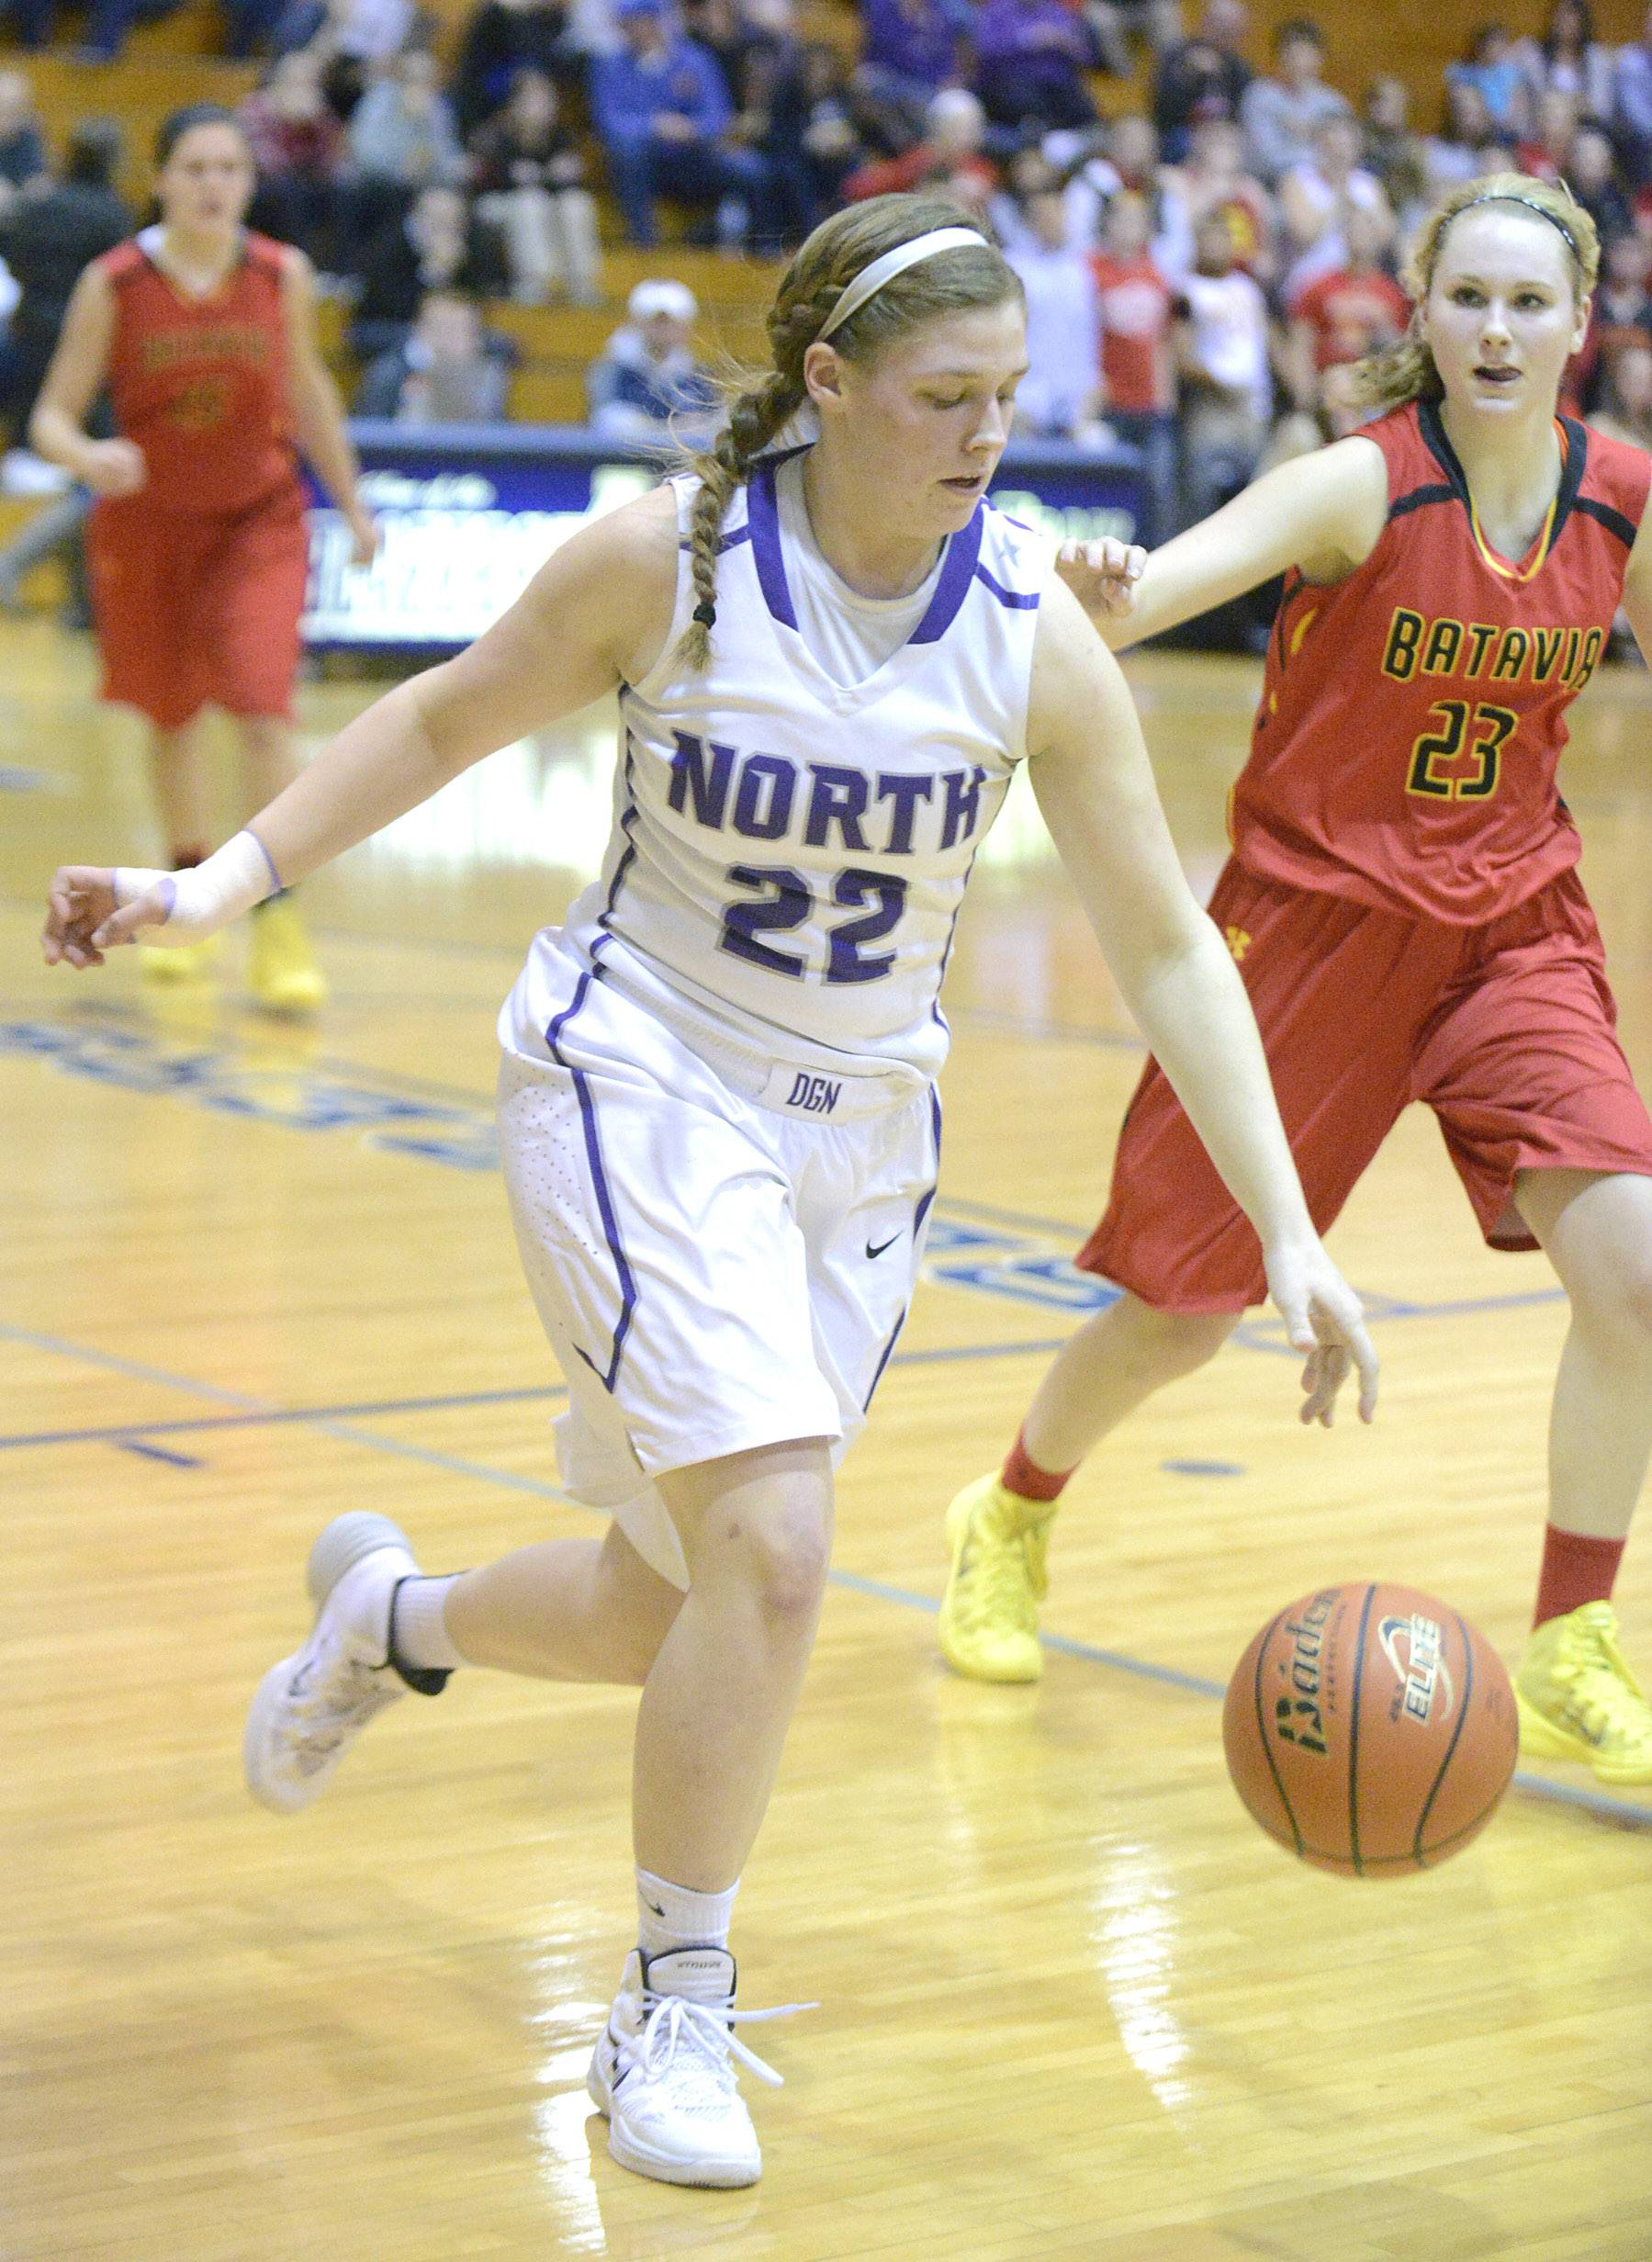 Downers Grove North's Colleen Honn drives the ball past Batavia's Shea Bayram in the third quarter of the 4A sectional semifinals at Addison Trail High School in Addison on Tuesday, February 25.